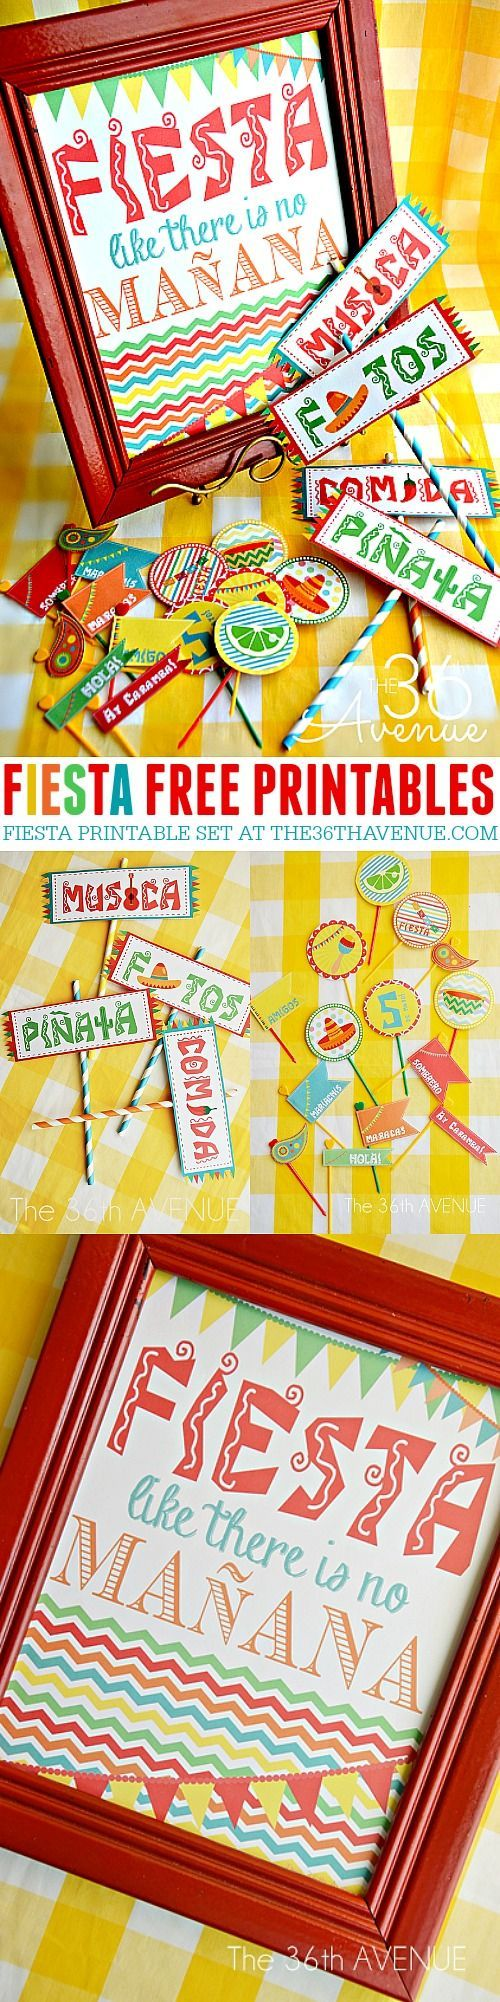 Cinco de Mayo Fiesta Printables. Fun way to decorate my house for a cinco de mayo party!